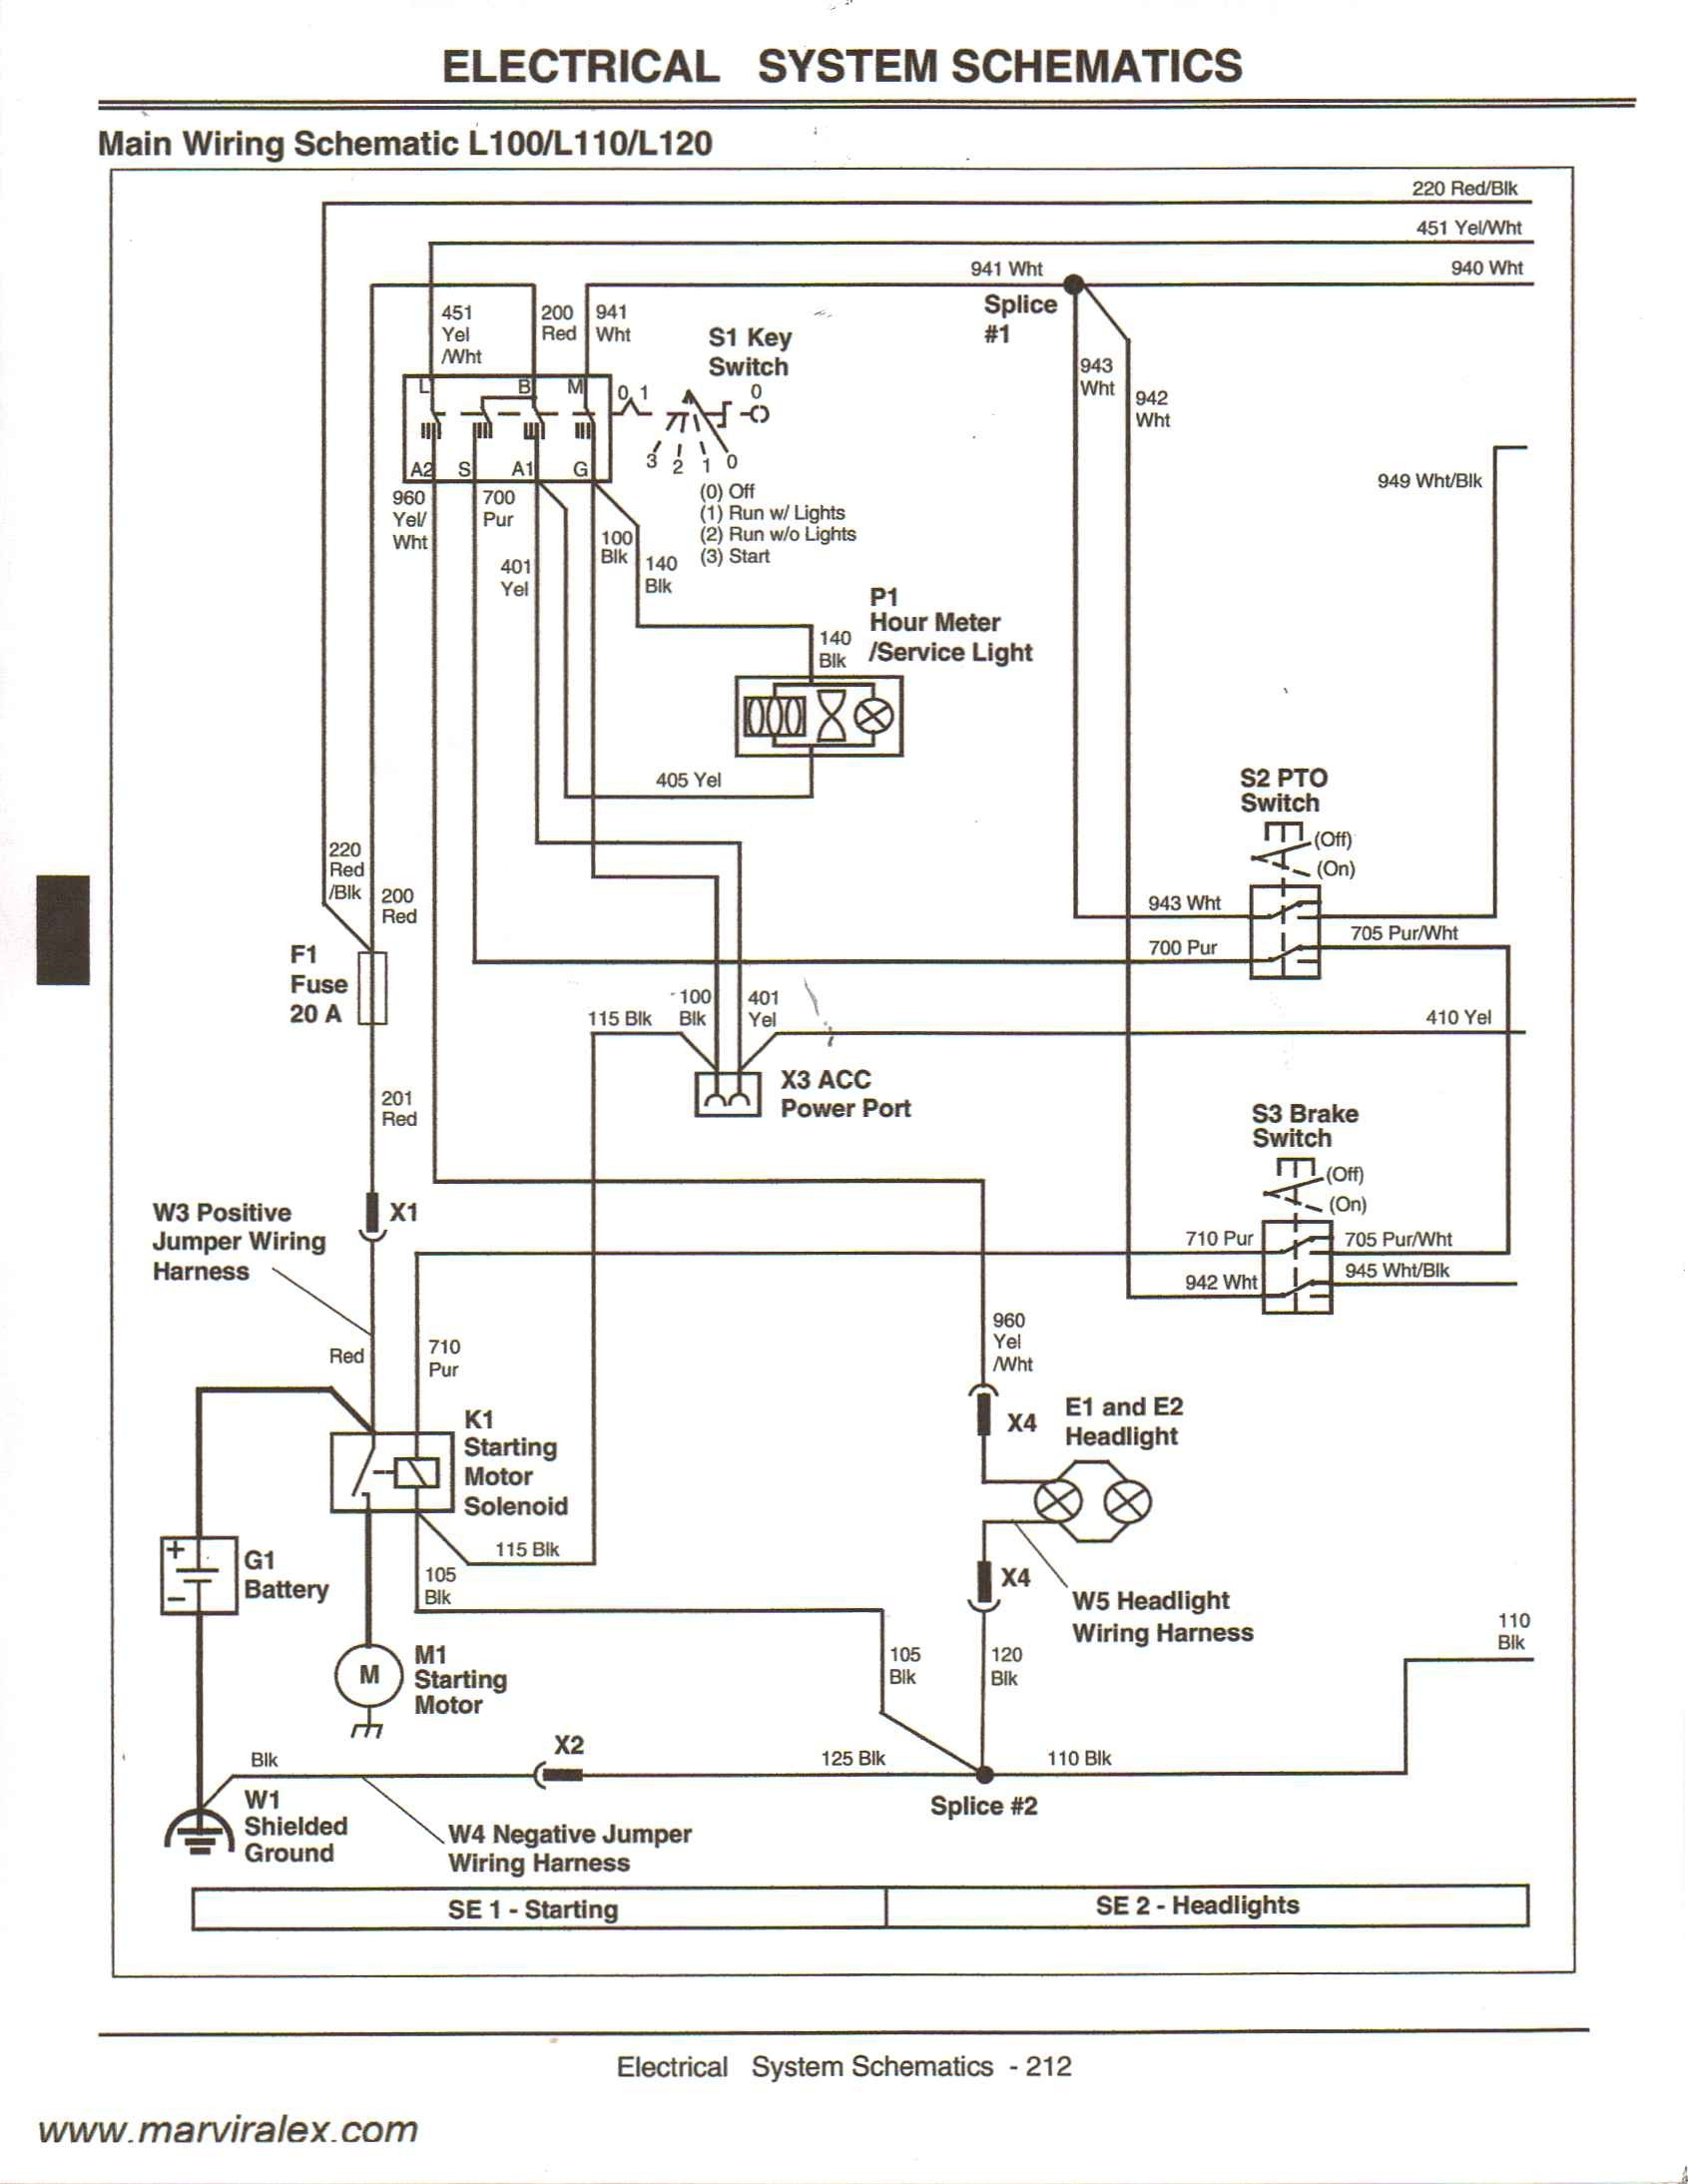 john deere stx38 wiring schematic | free wiring diagram john deere engine diagrams 6410 john deere engine diagram